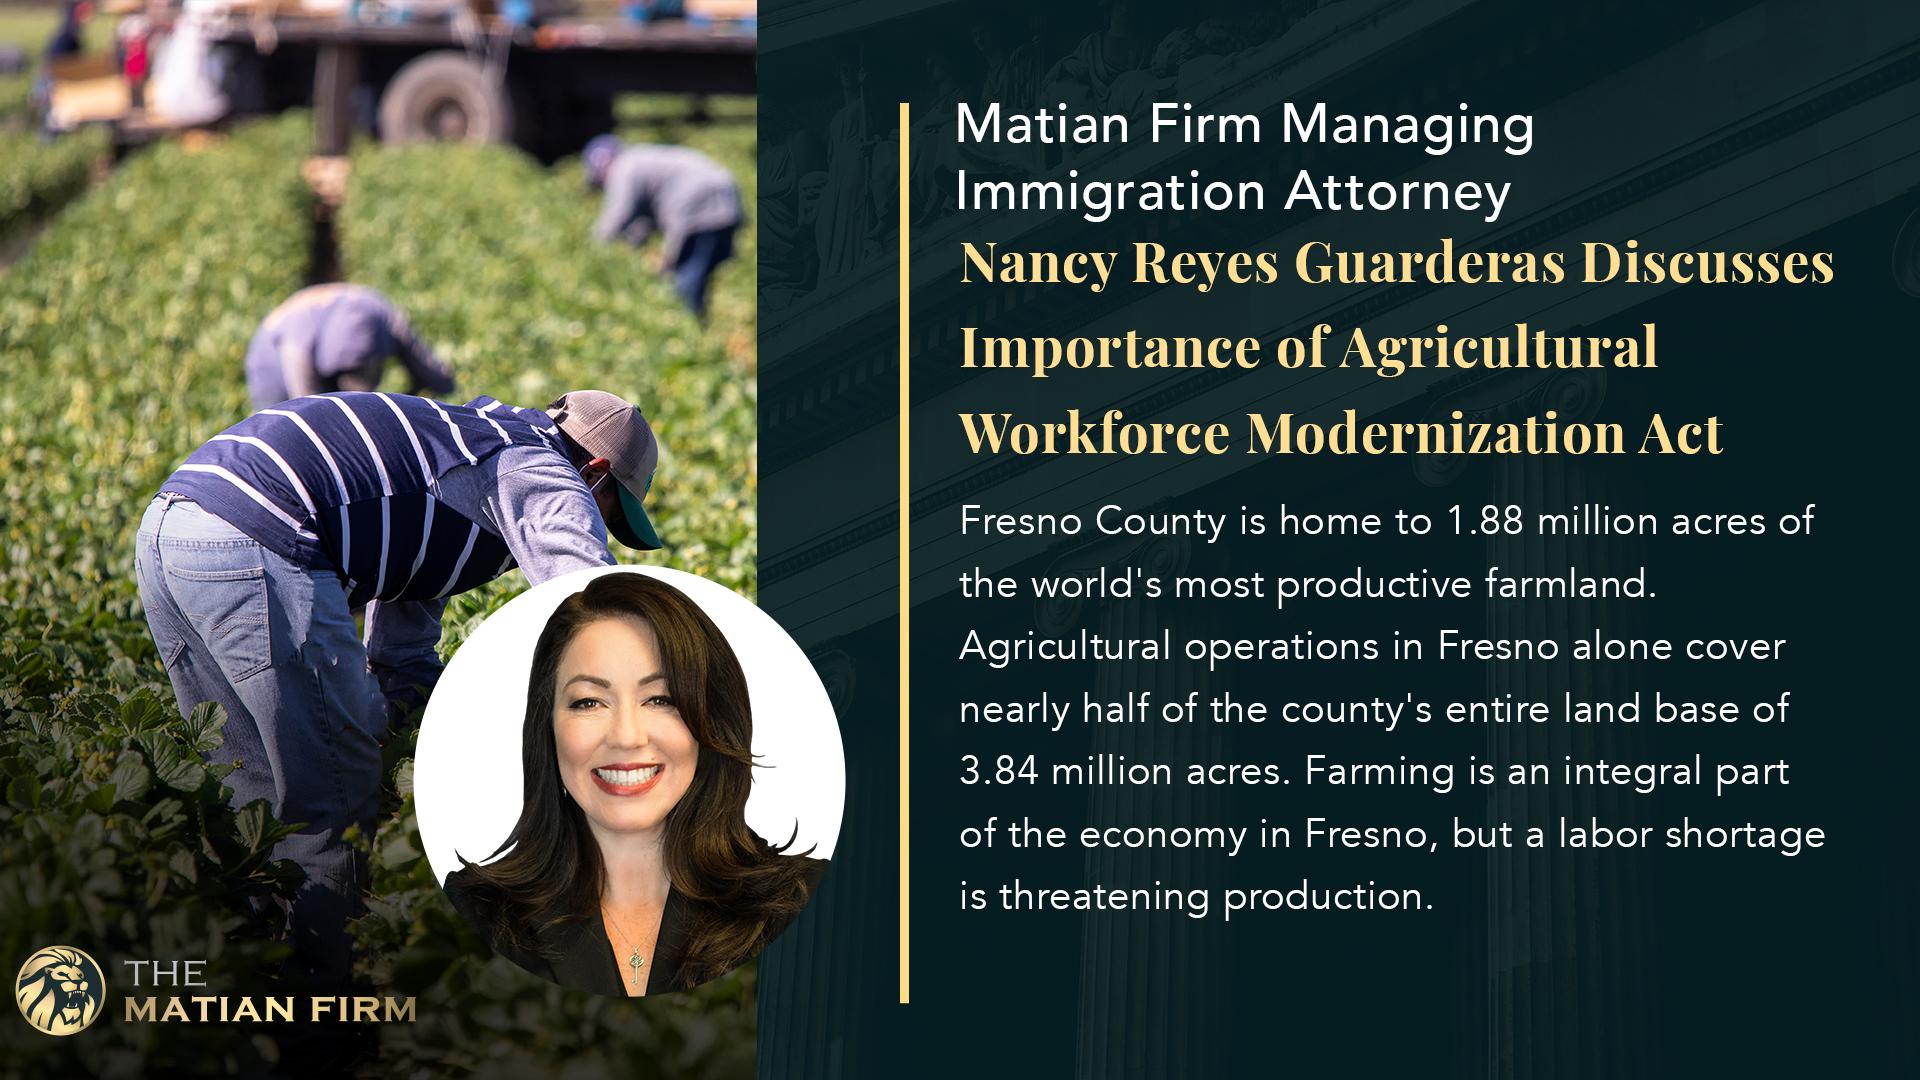 Matian Firm | La Liga Defensora Managing Immigration Attorney Nancy Reyes Guarderas Discusses Importance of Agricultural Workforce Modernization Act